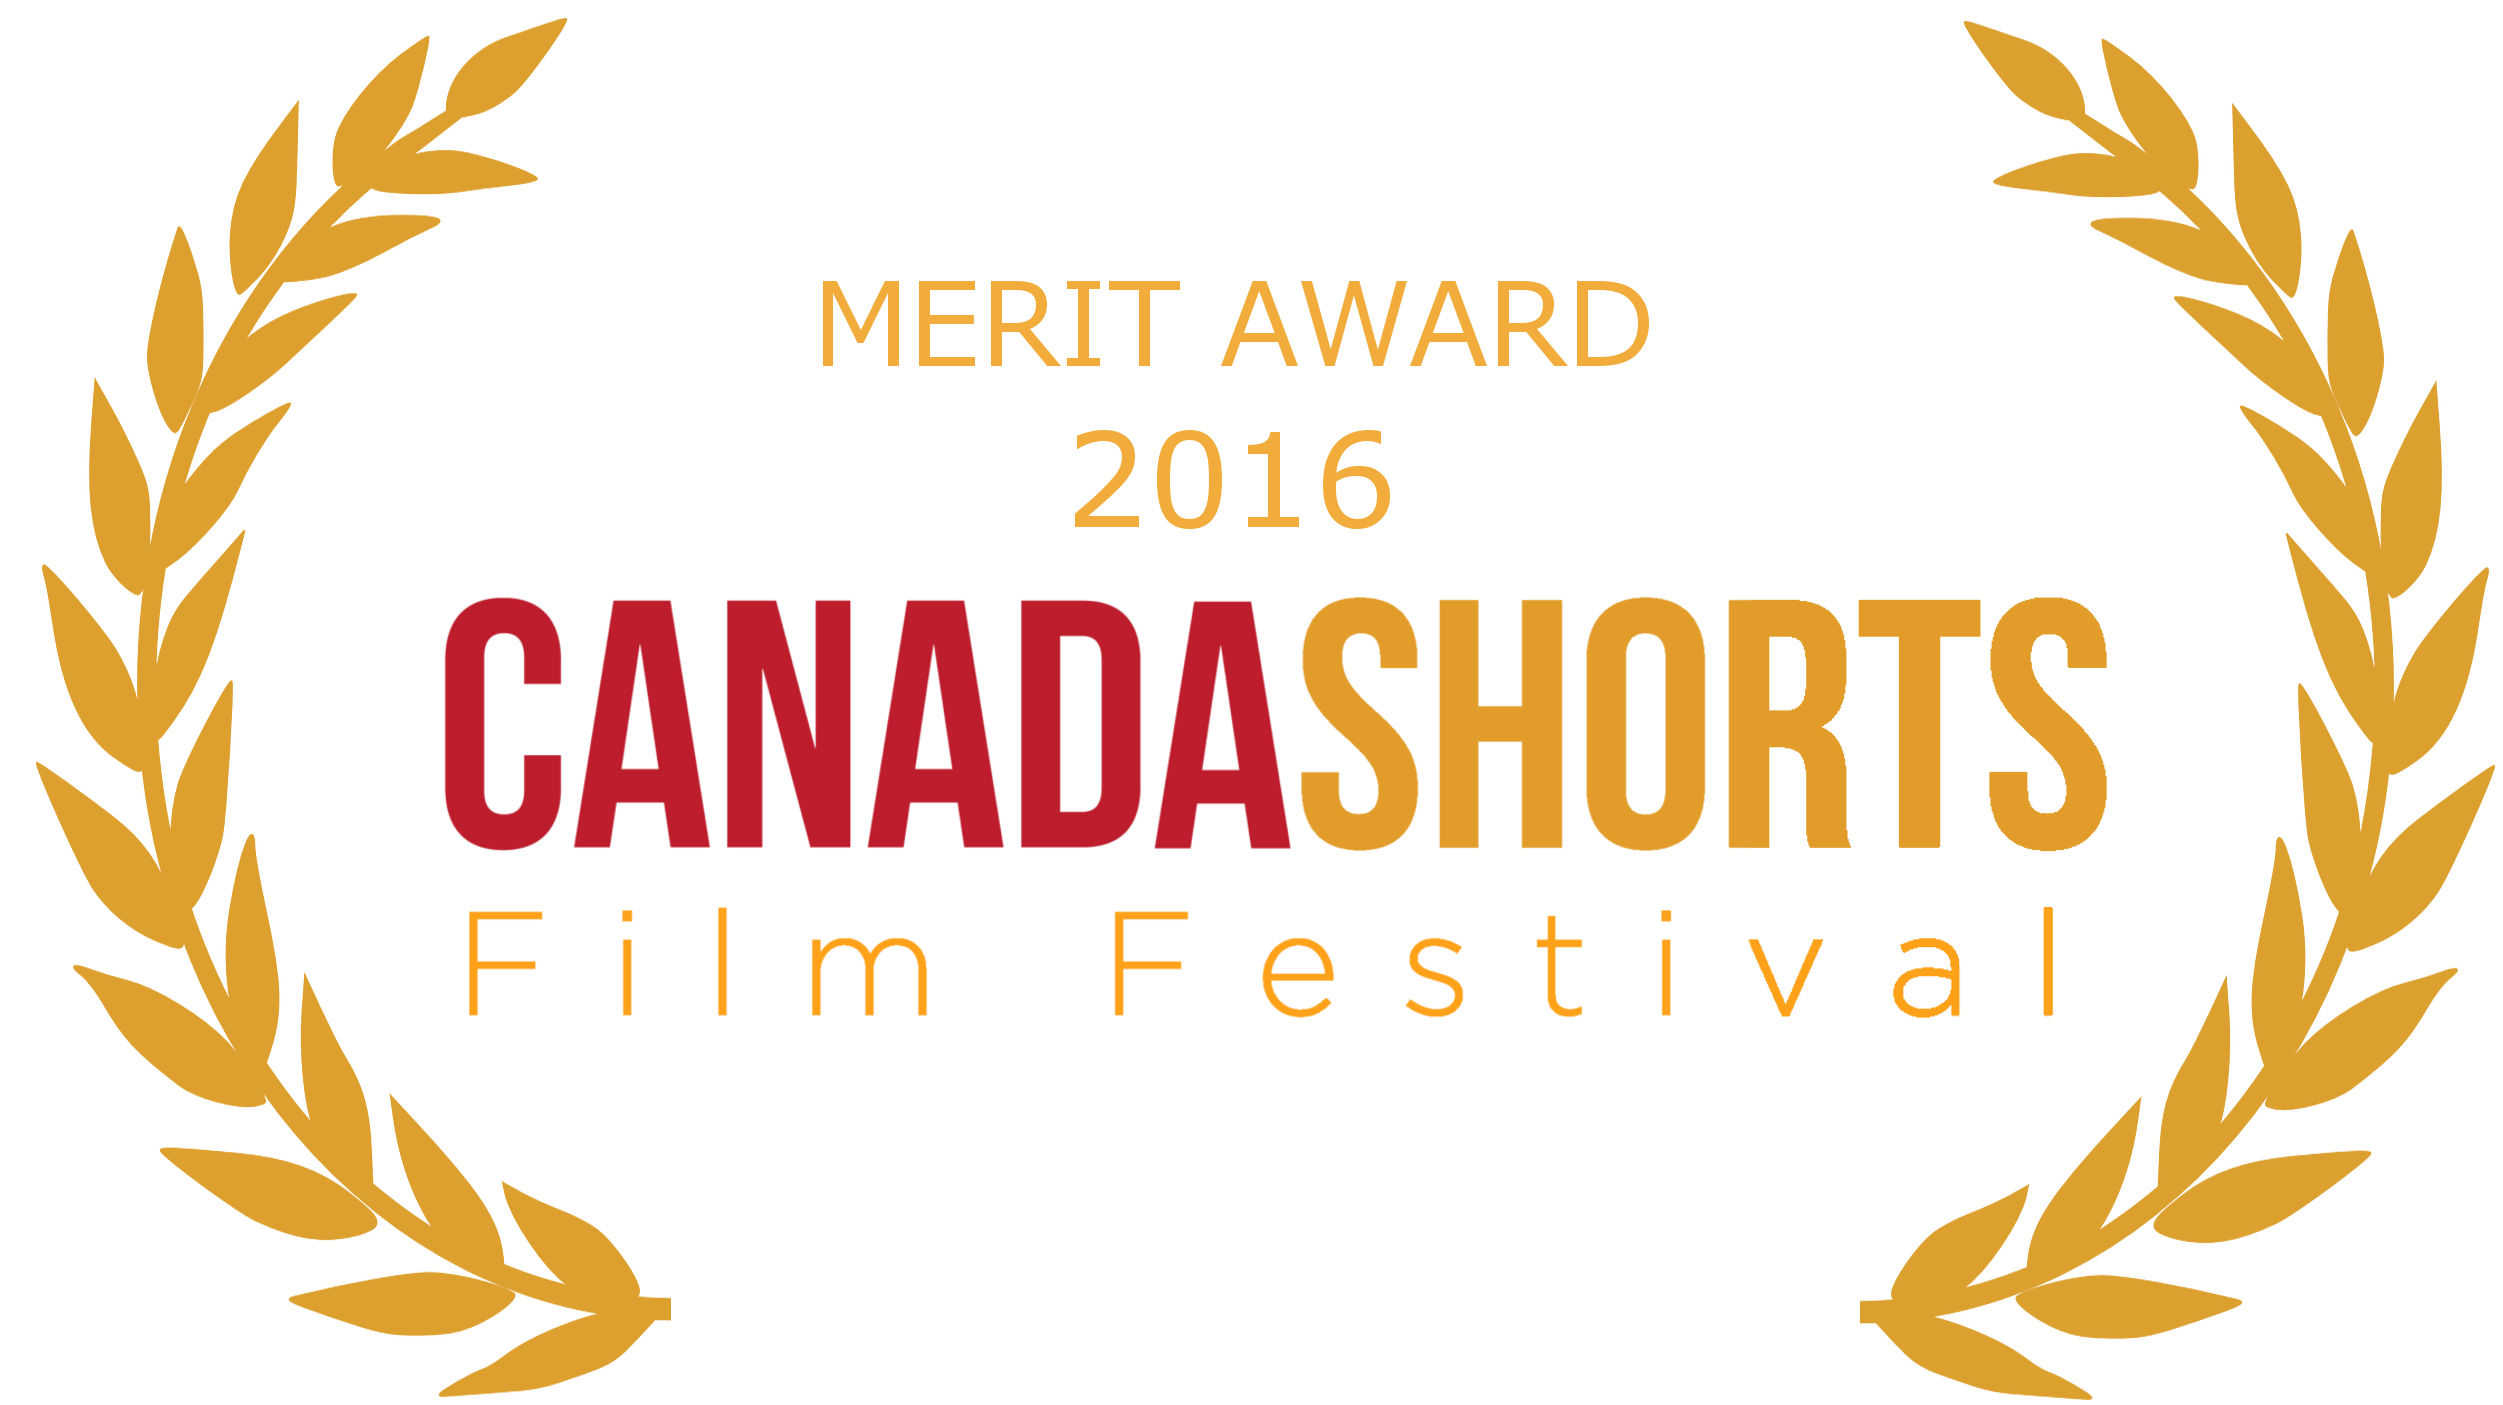 Laurels for Canada Shorts Short Film Festival 2016 Merit Award!